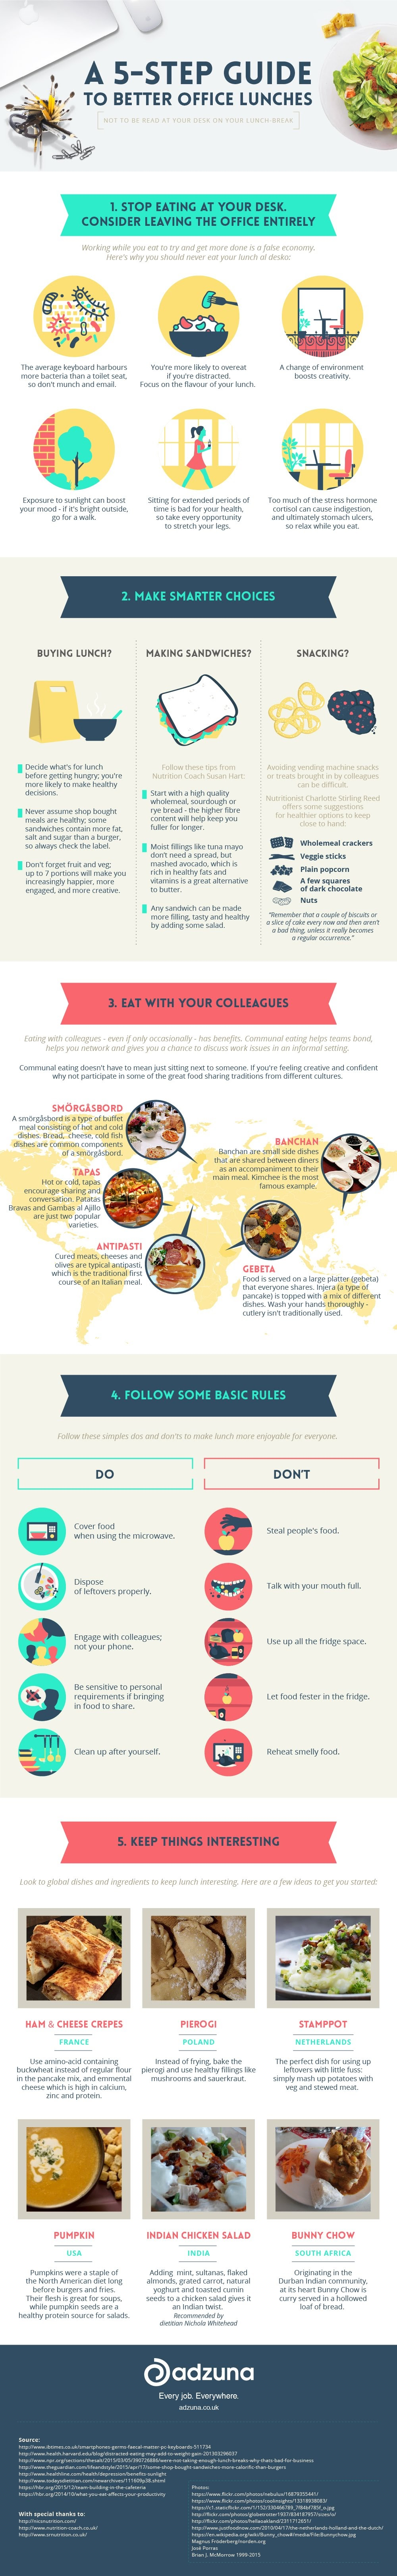 A 5-Step Guide To Better Office Lunches #infographic